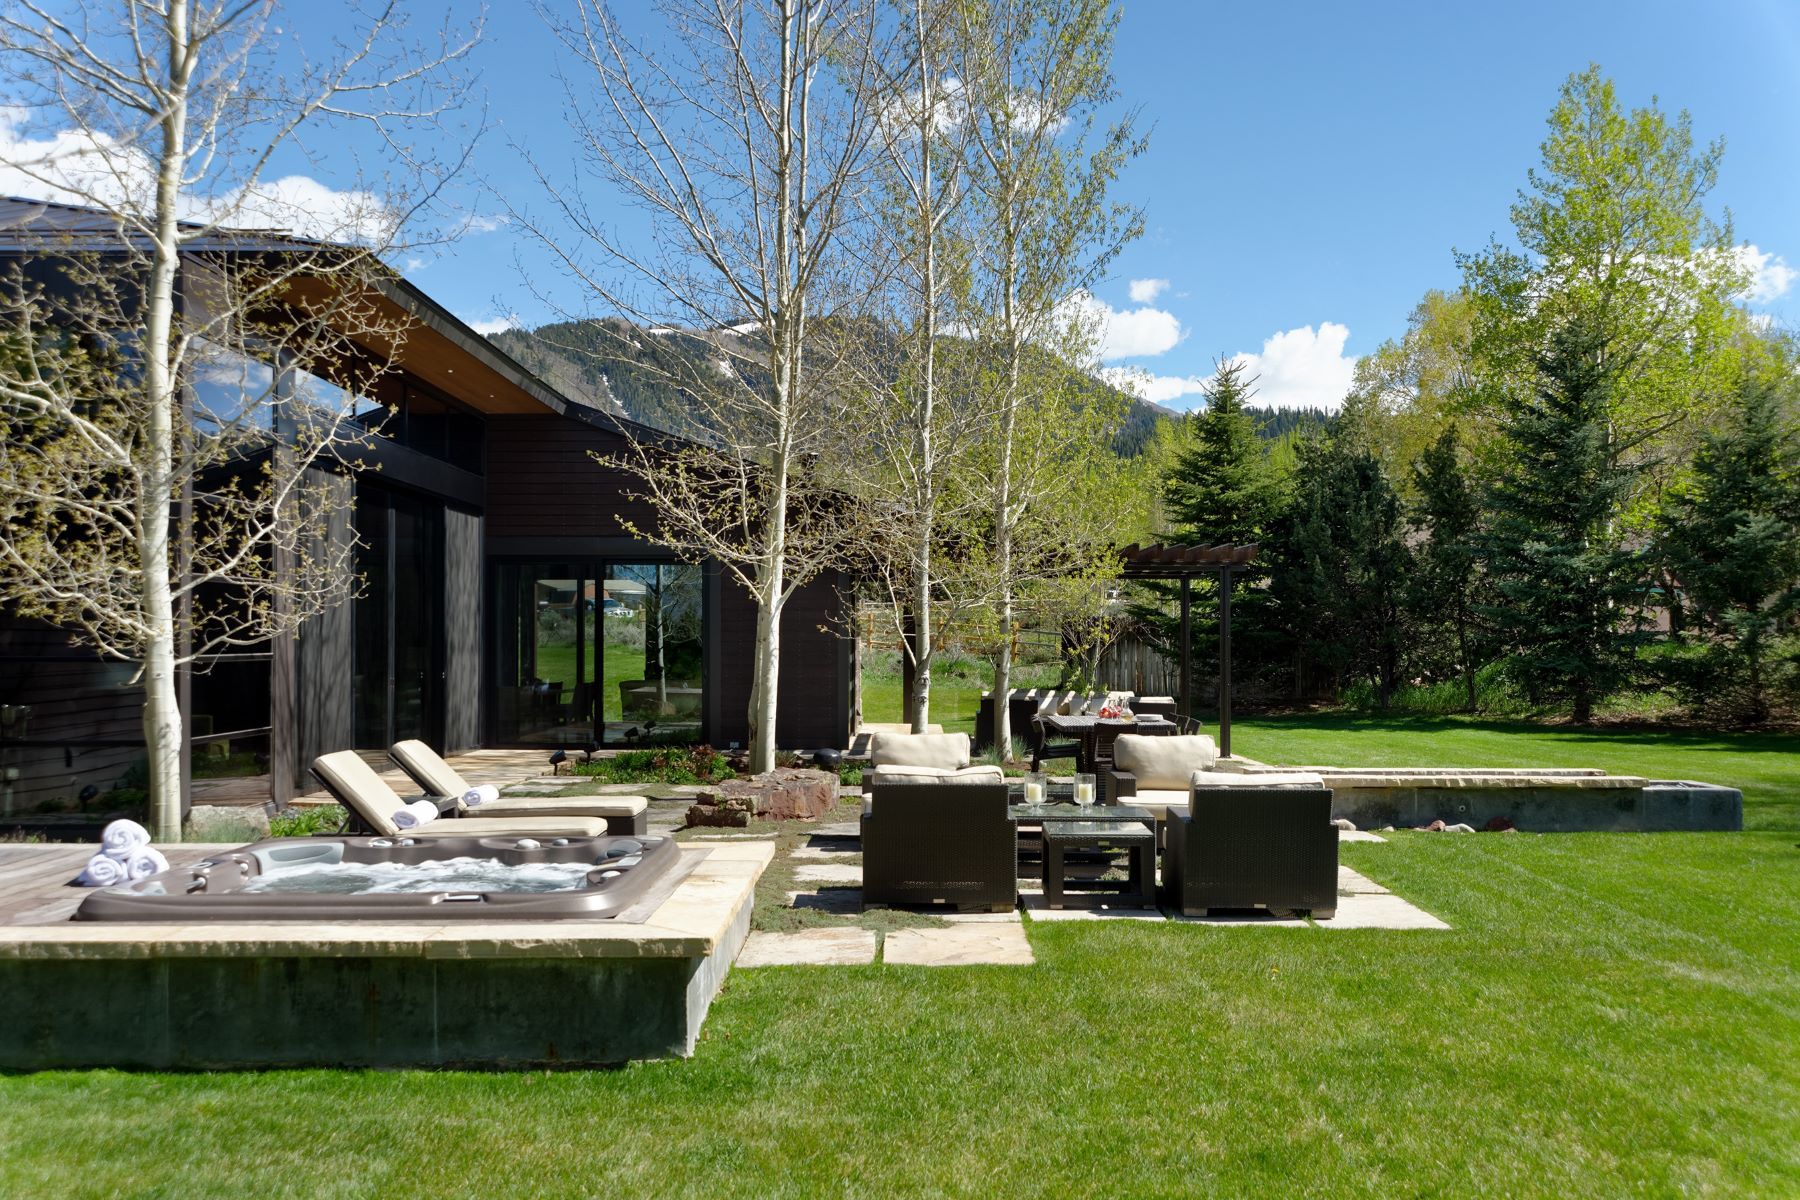 Single Family Home for Sale at Impressive Mountain Contemporary in West Aspen 28 Maroon Drive West Aspen, Aspen, Colorado, 81611 United States